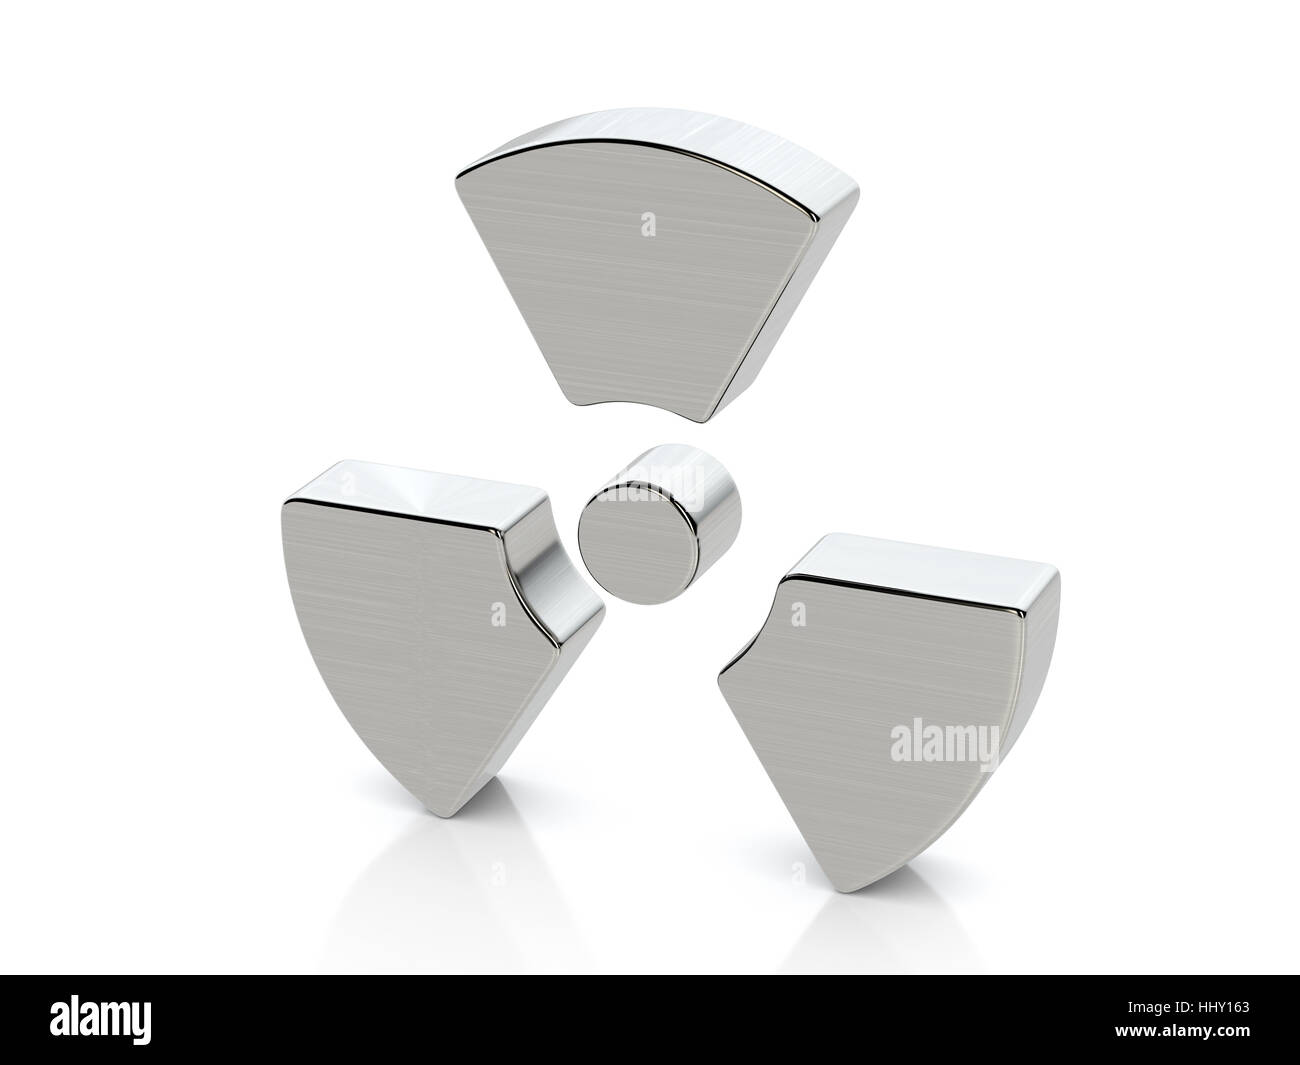 Metallic radiation symbol on a white background. Stock Photo